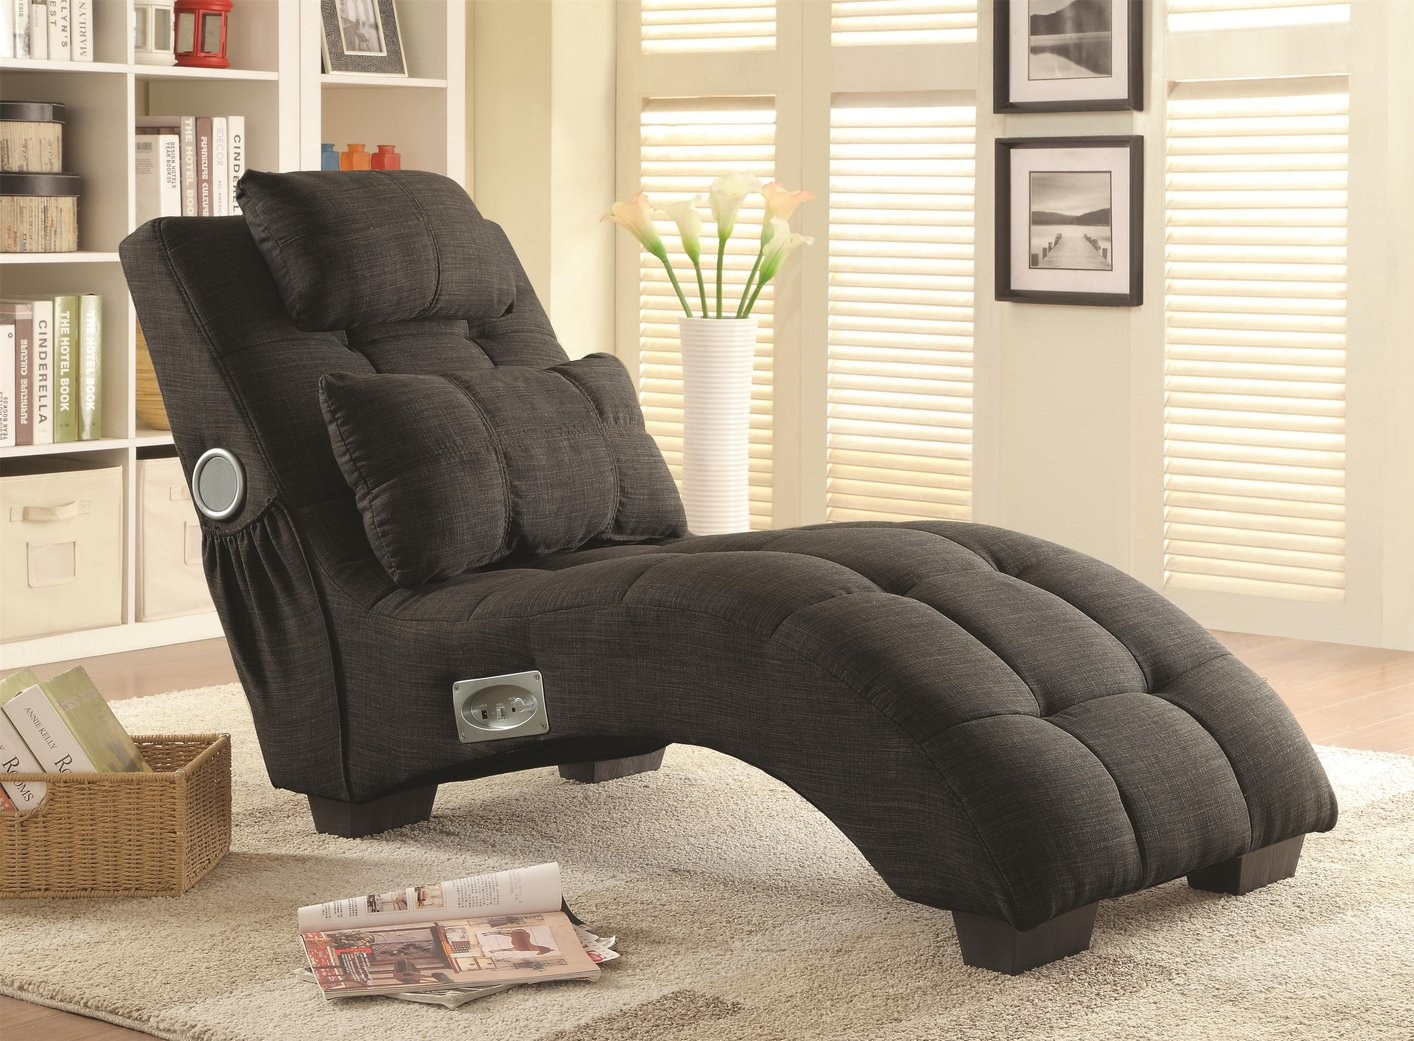 Grey Fabric Chaise Lounge : fabric chaise - Sectionals, Sofas & Couches